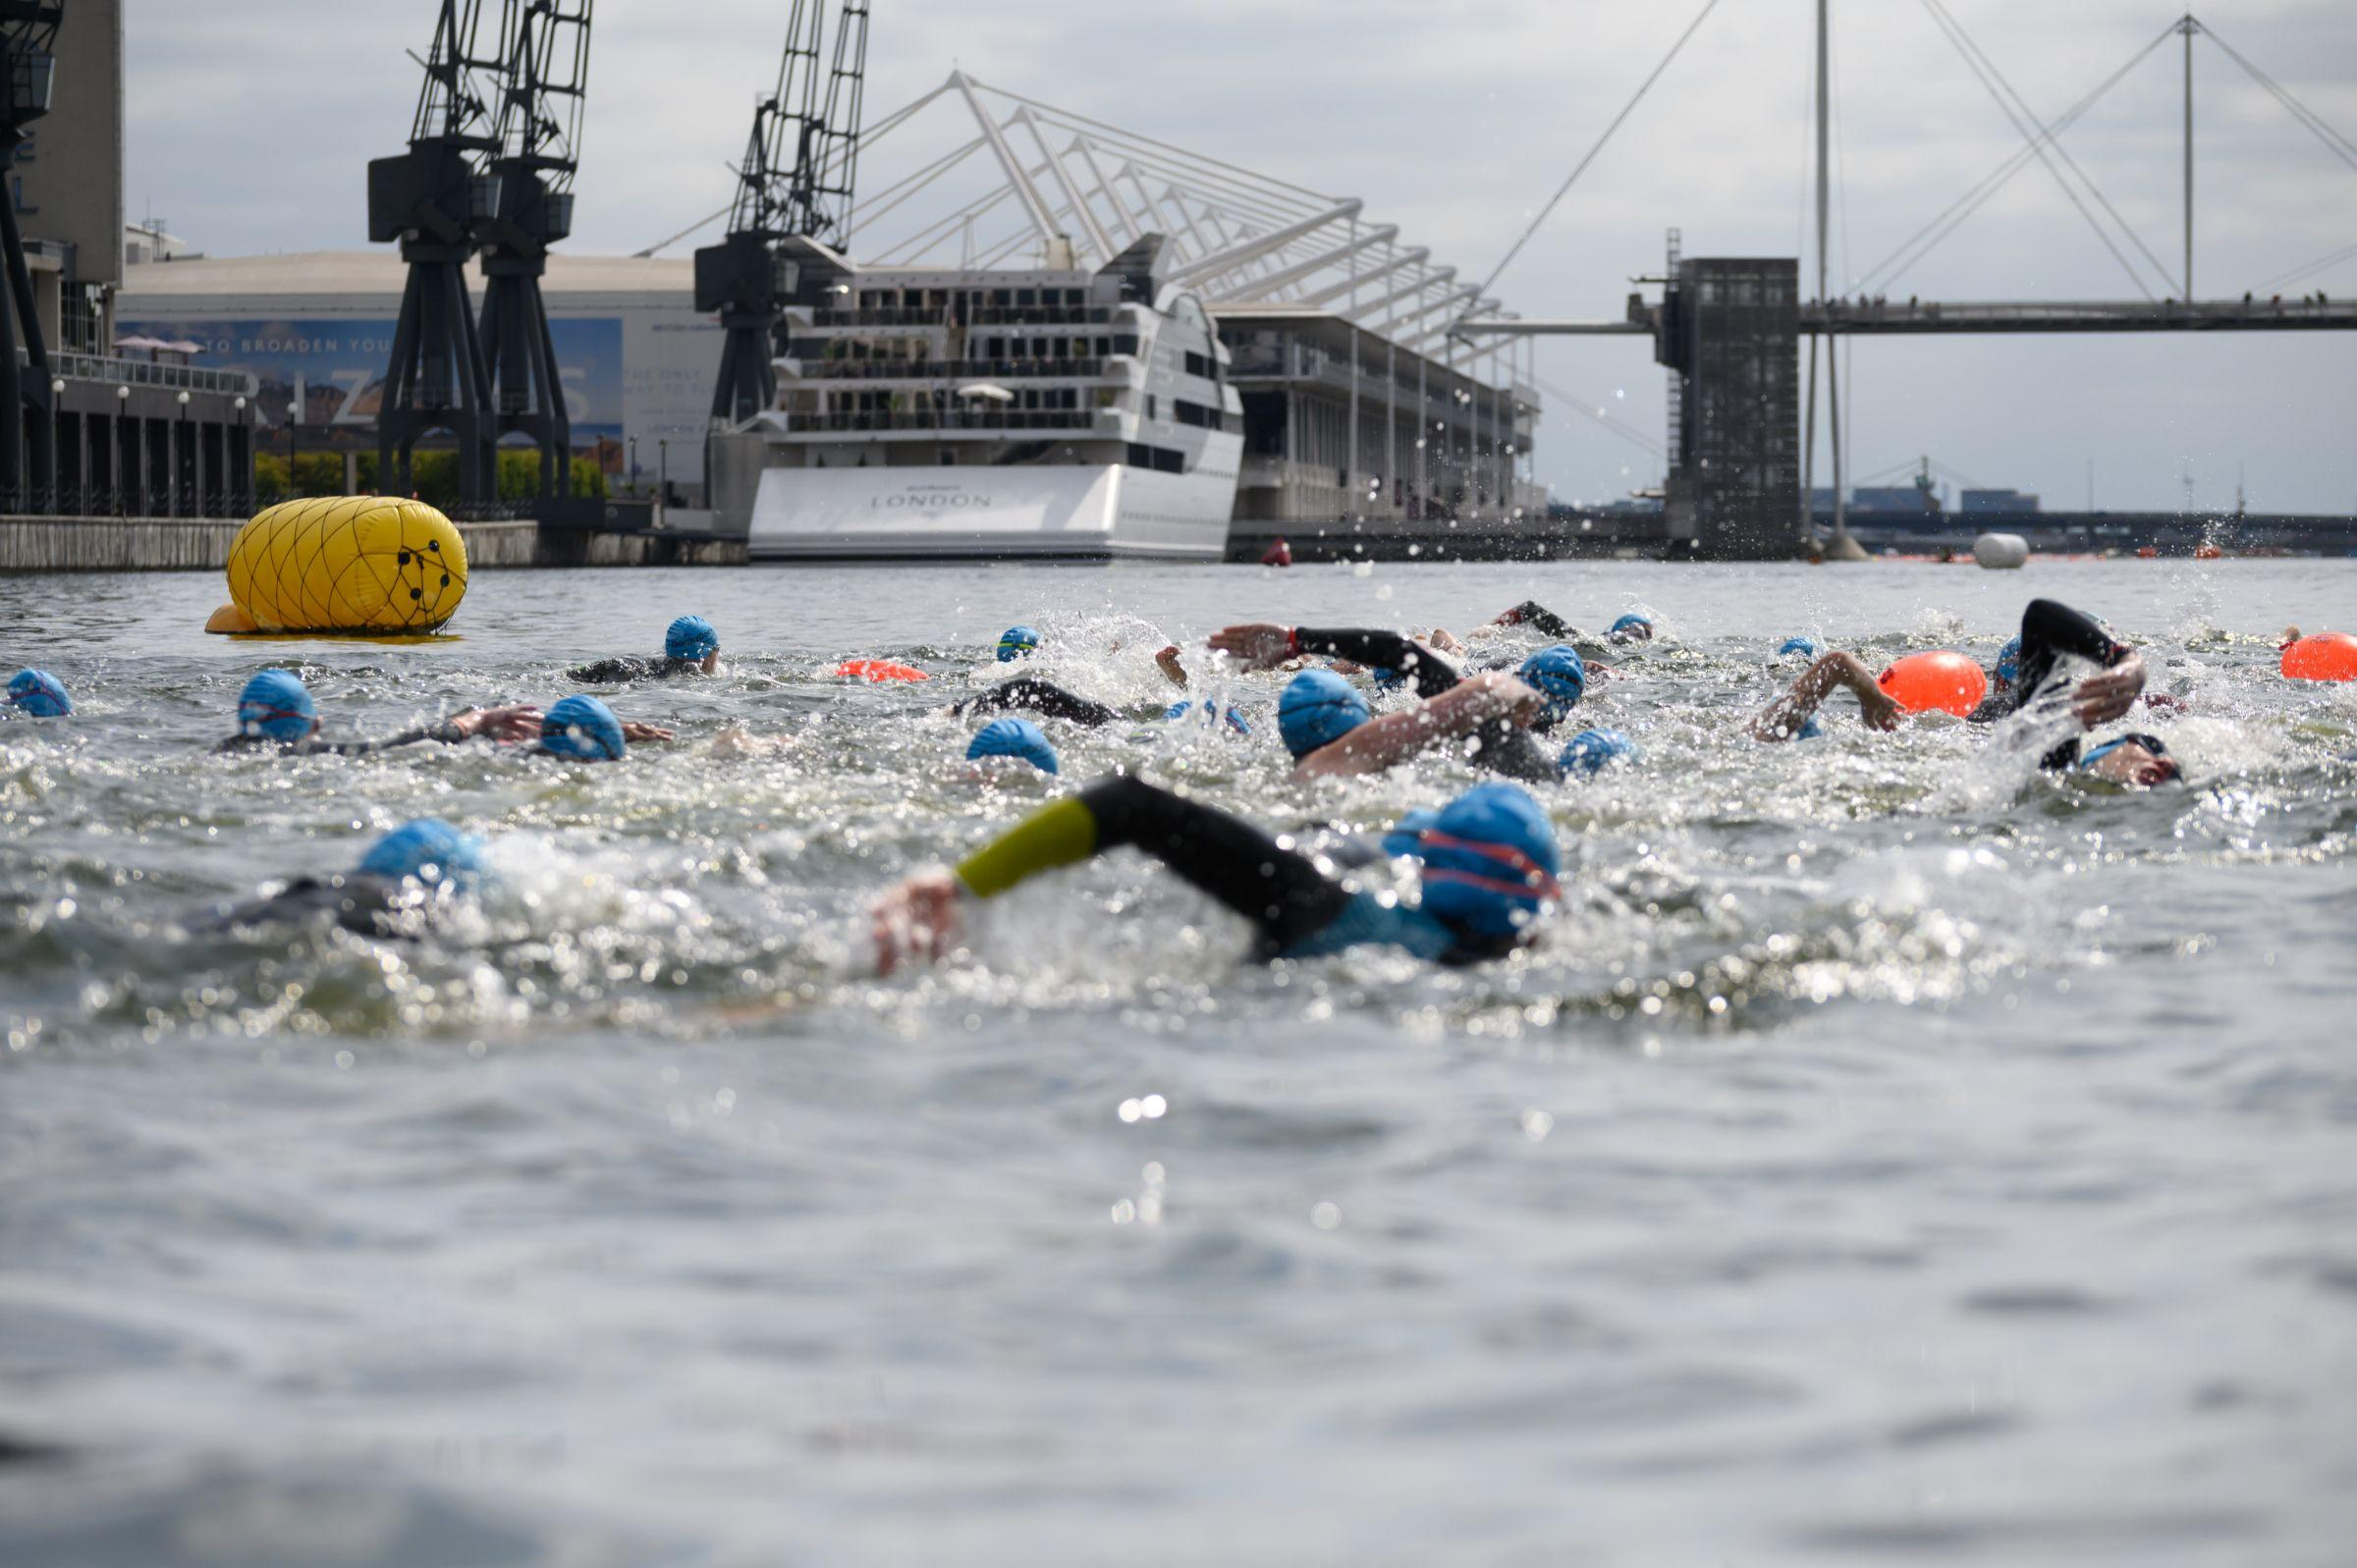 A large group of swimmers in the Royal Docks water